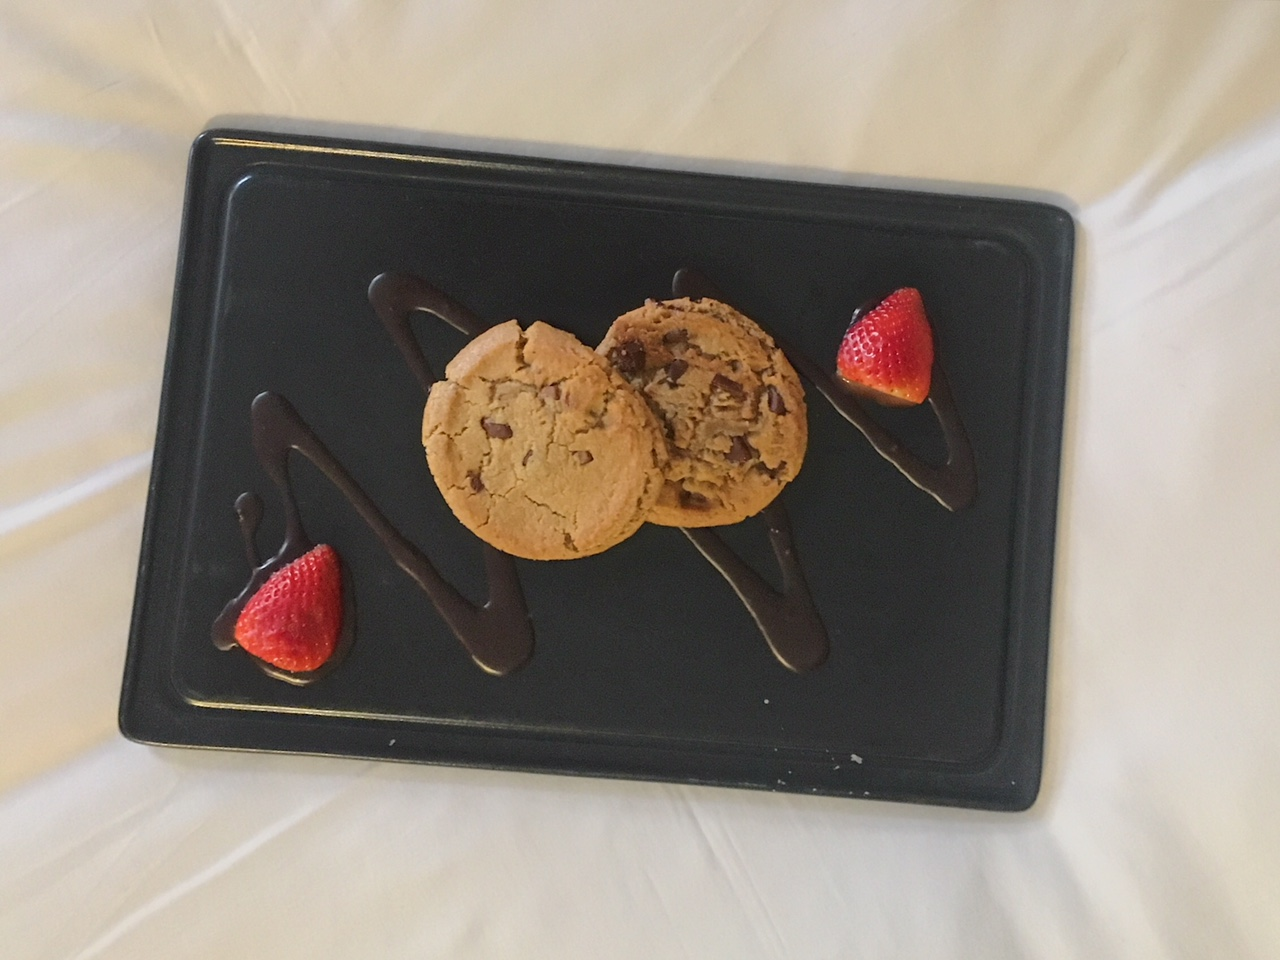 Cookies waiting in our room at Mercure Grand Bristol Spa Hotel